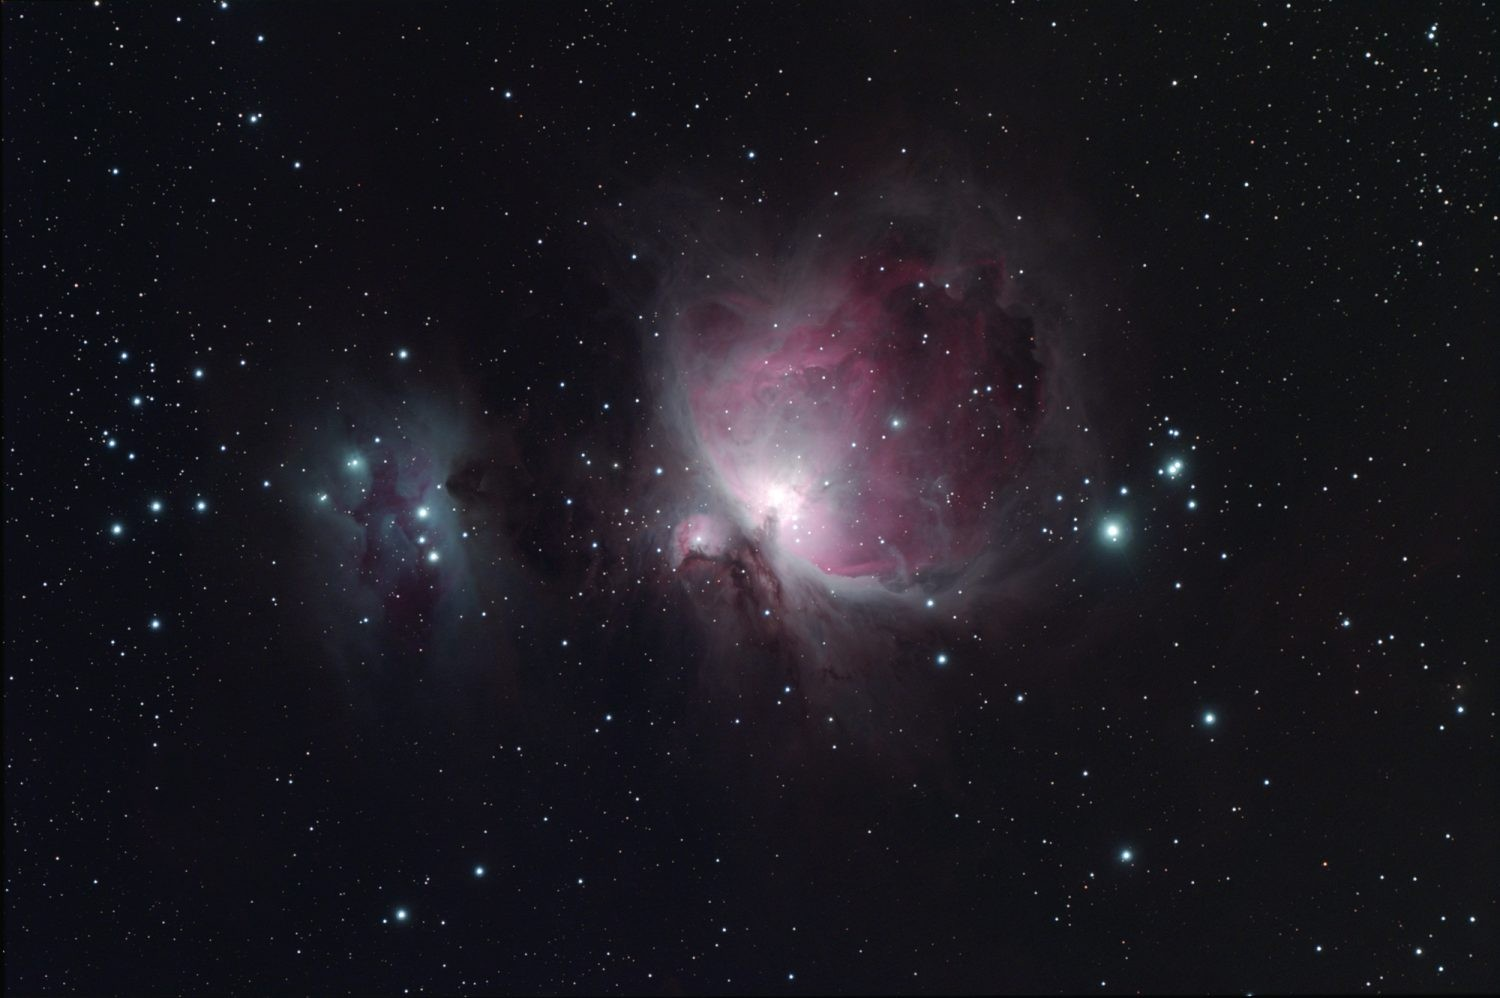 The same shot of the Orion Nebula after a master flat frame calibration has been applied – now there is an even distribution of light intensity across the background night sky. Credit: Steve Richards